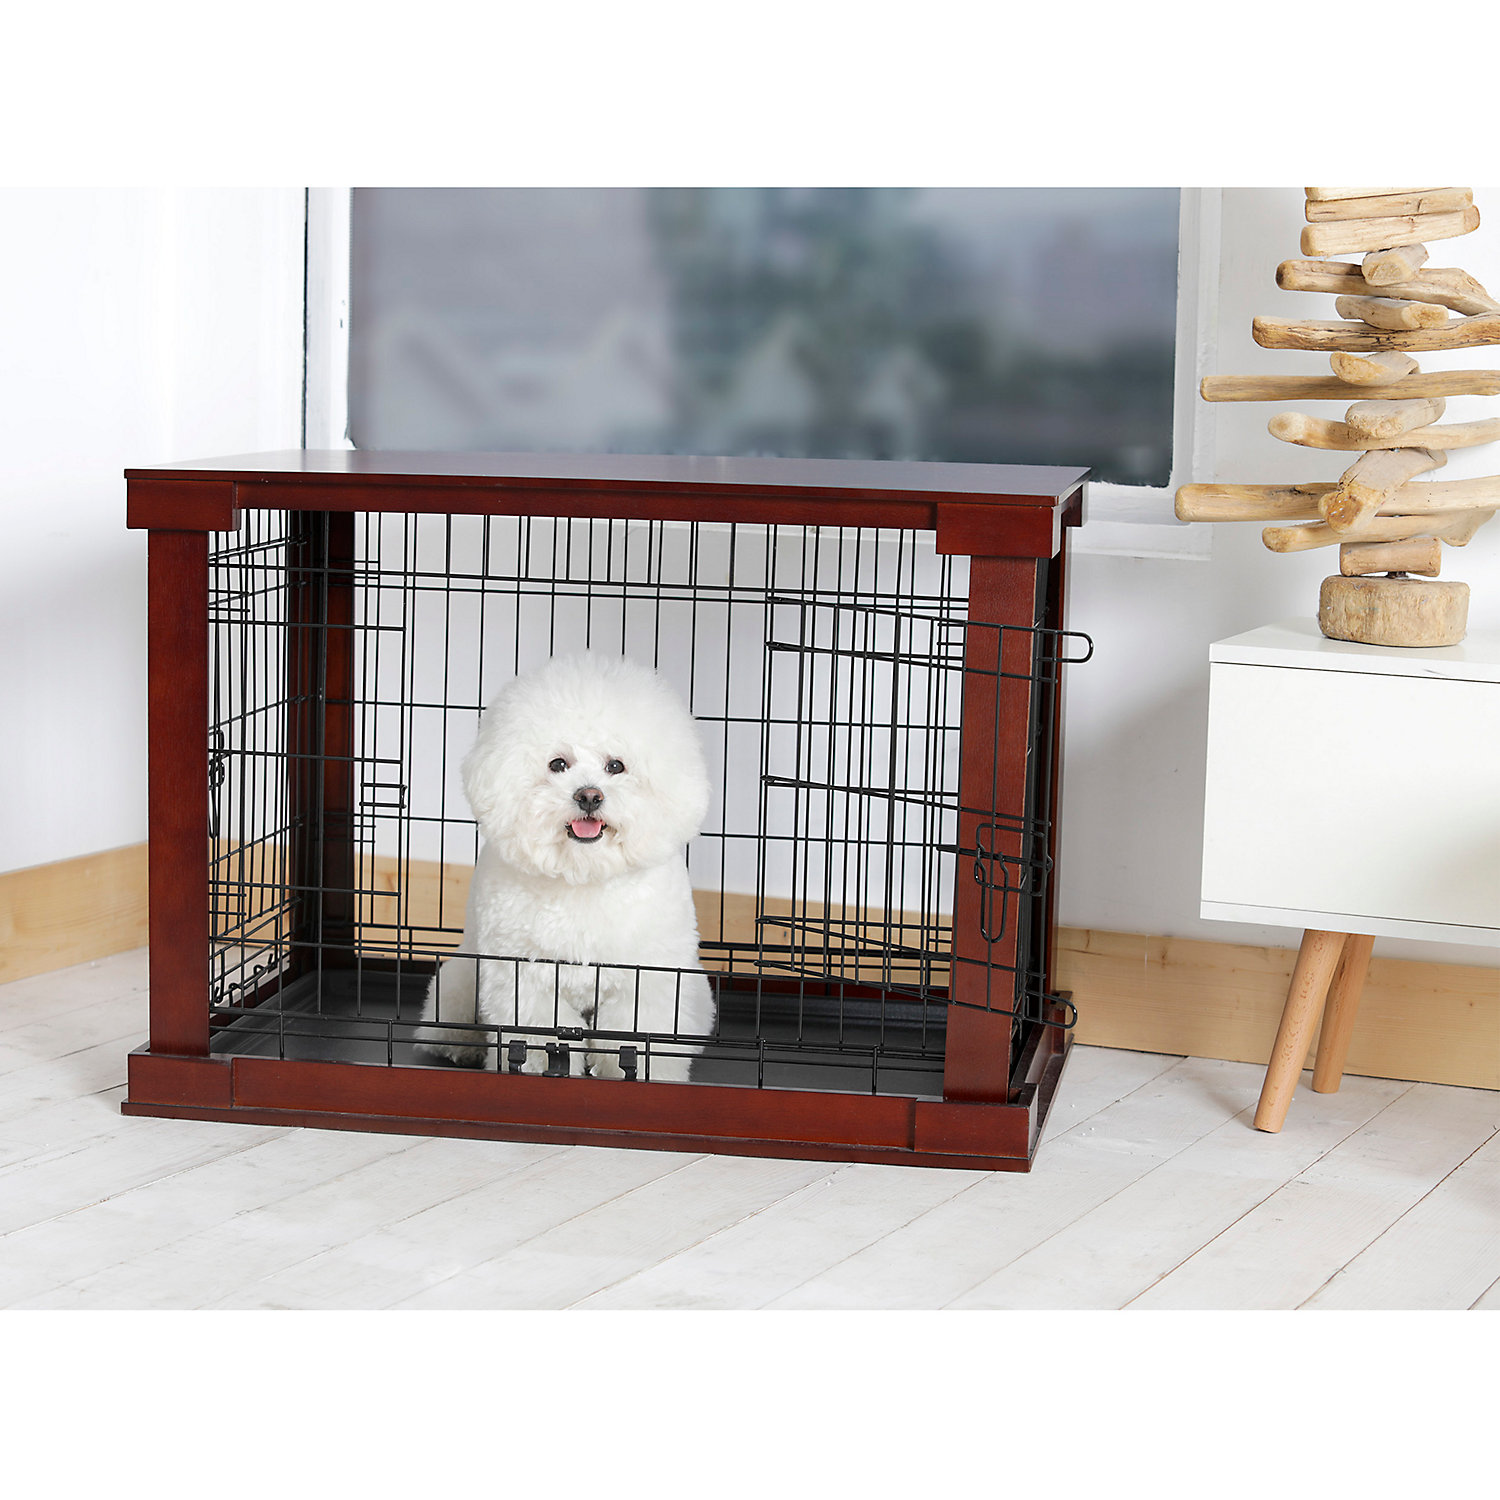 Merry Cage With Crate Cover Mahogany, Medium